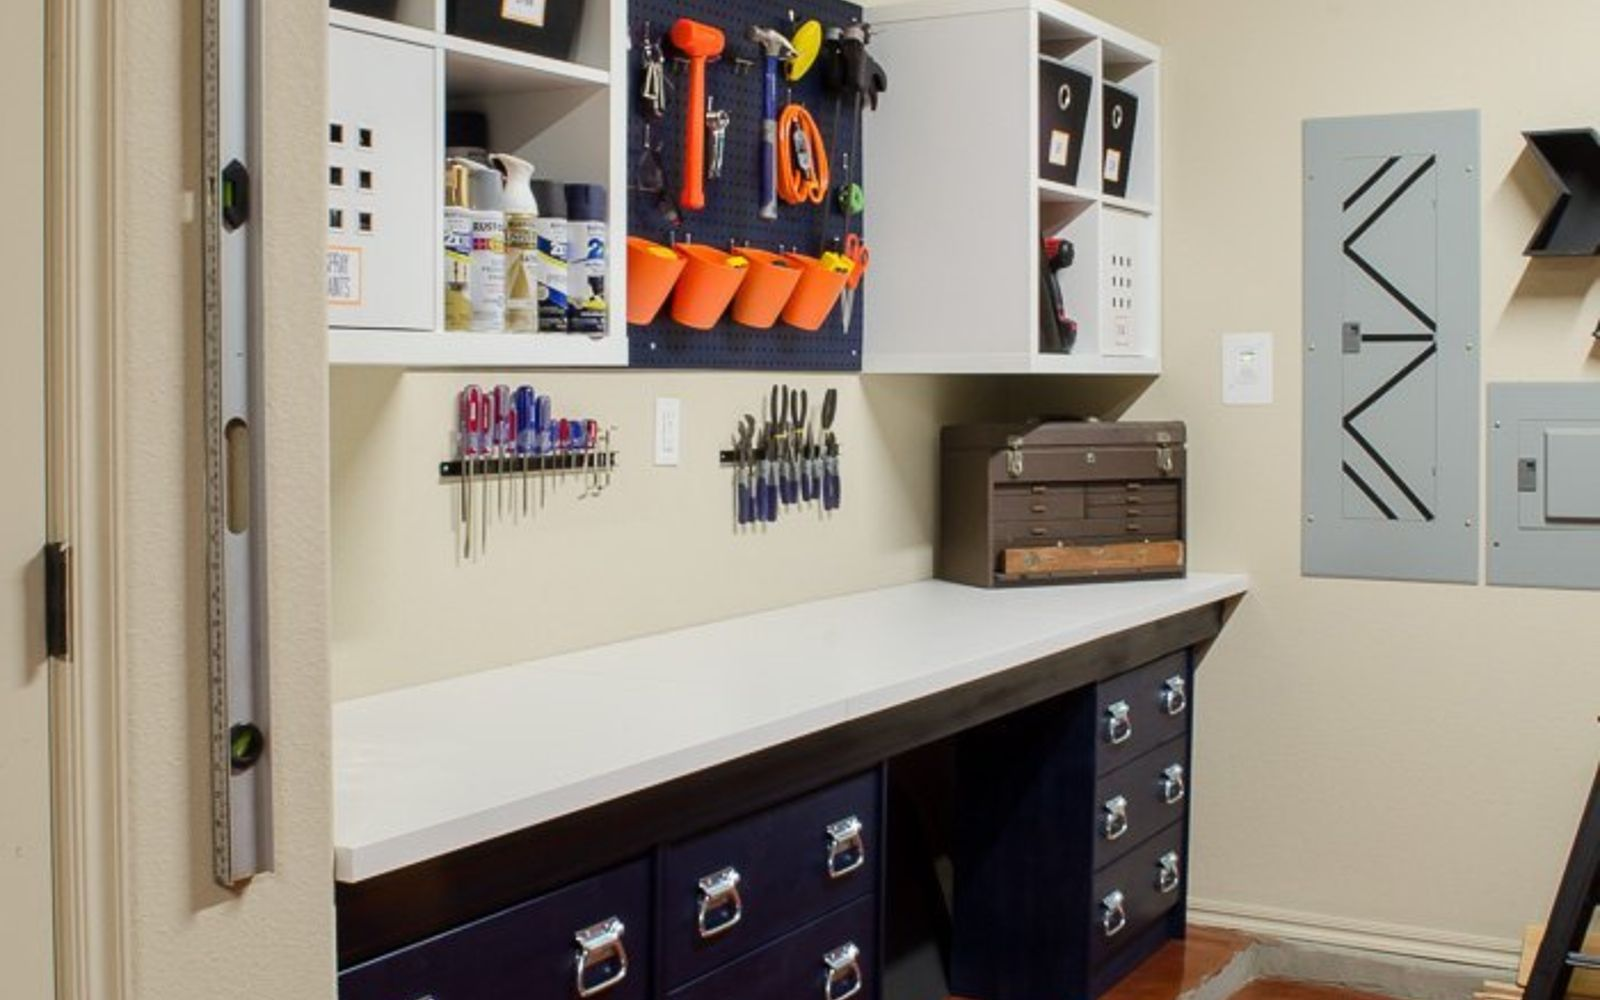 ikea garage shelving ideas - 12 Clever Garage Storage Ideas from Highly organized